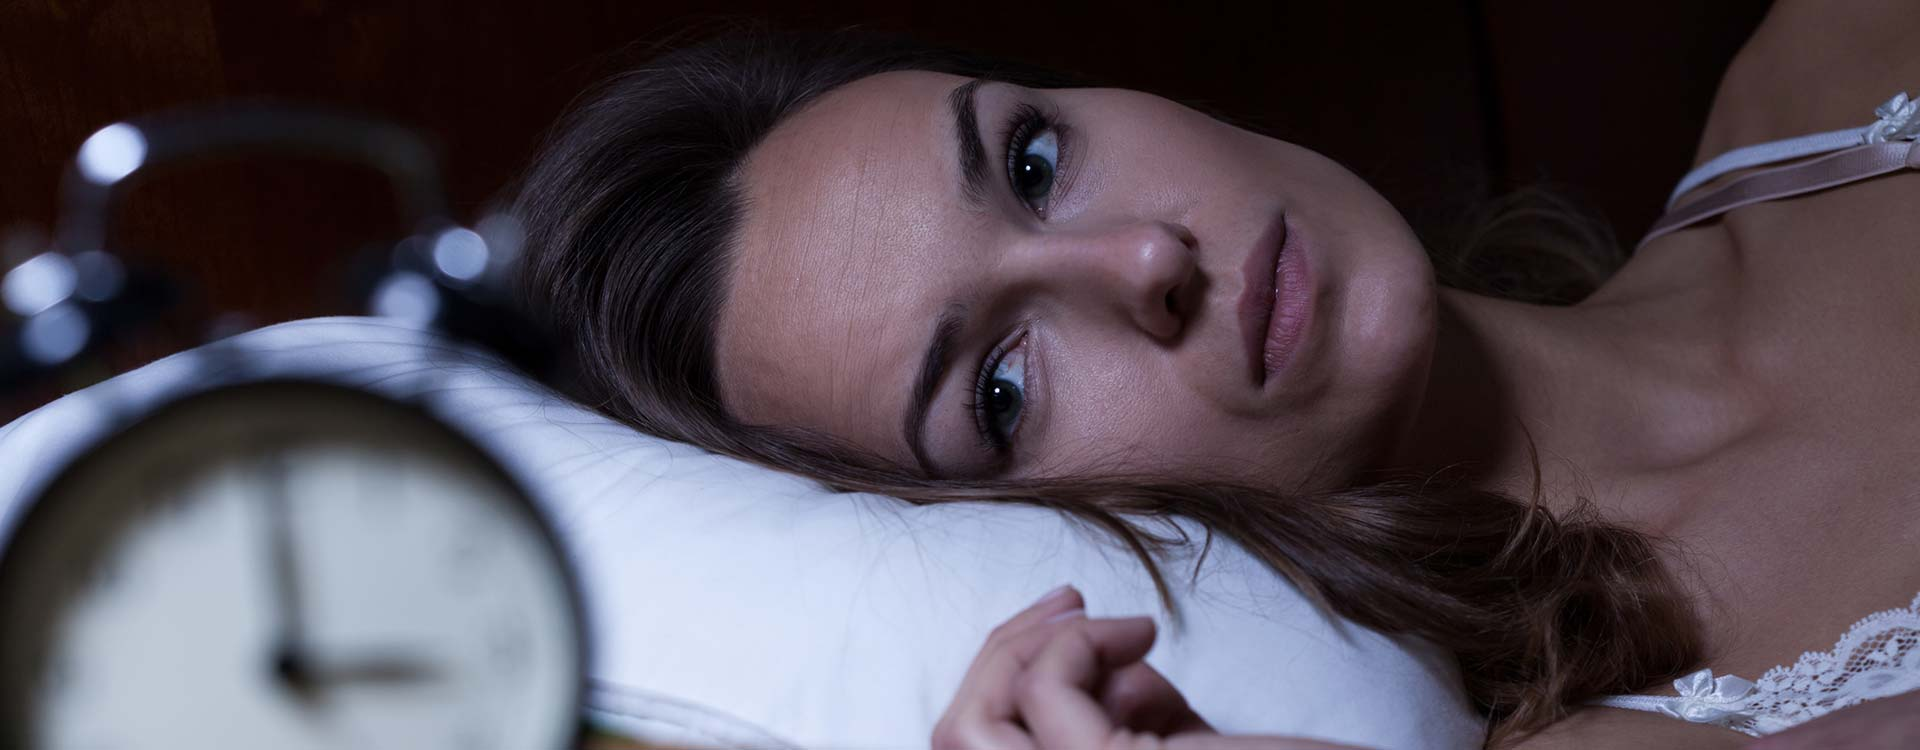 Insomnia and Sleep problems